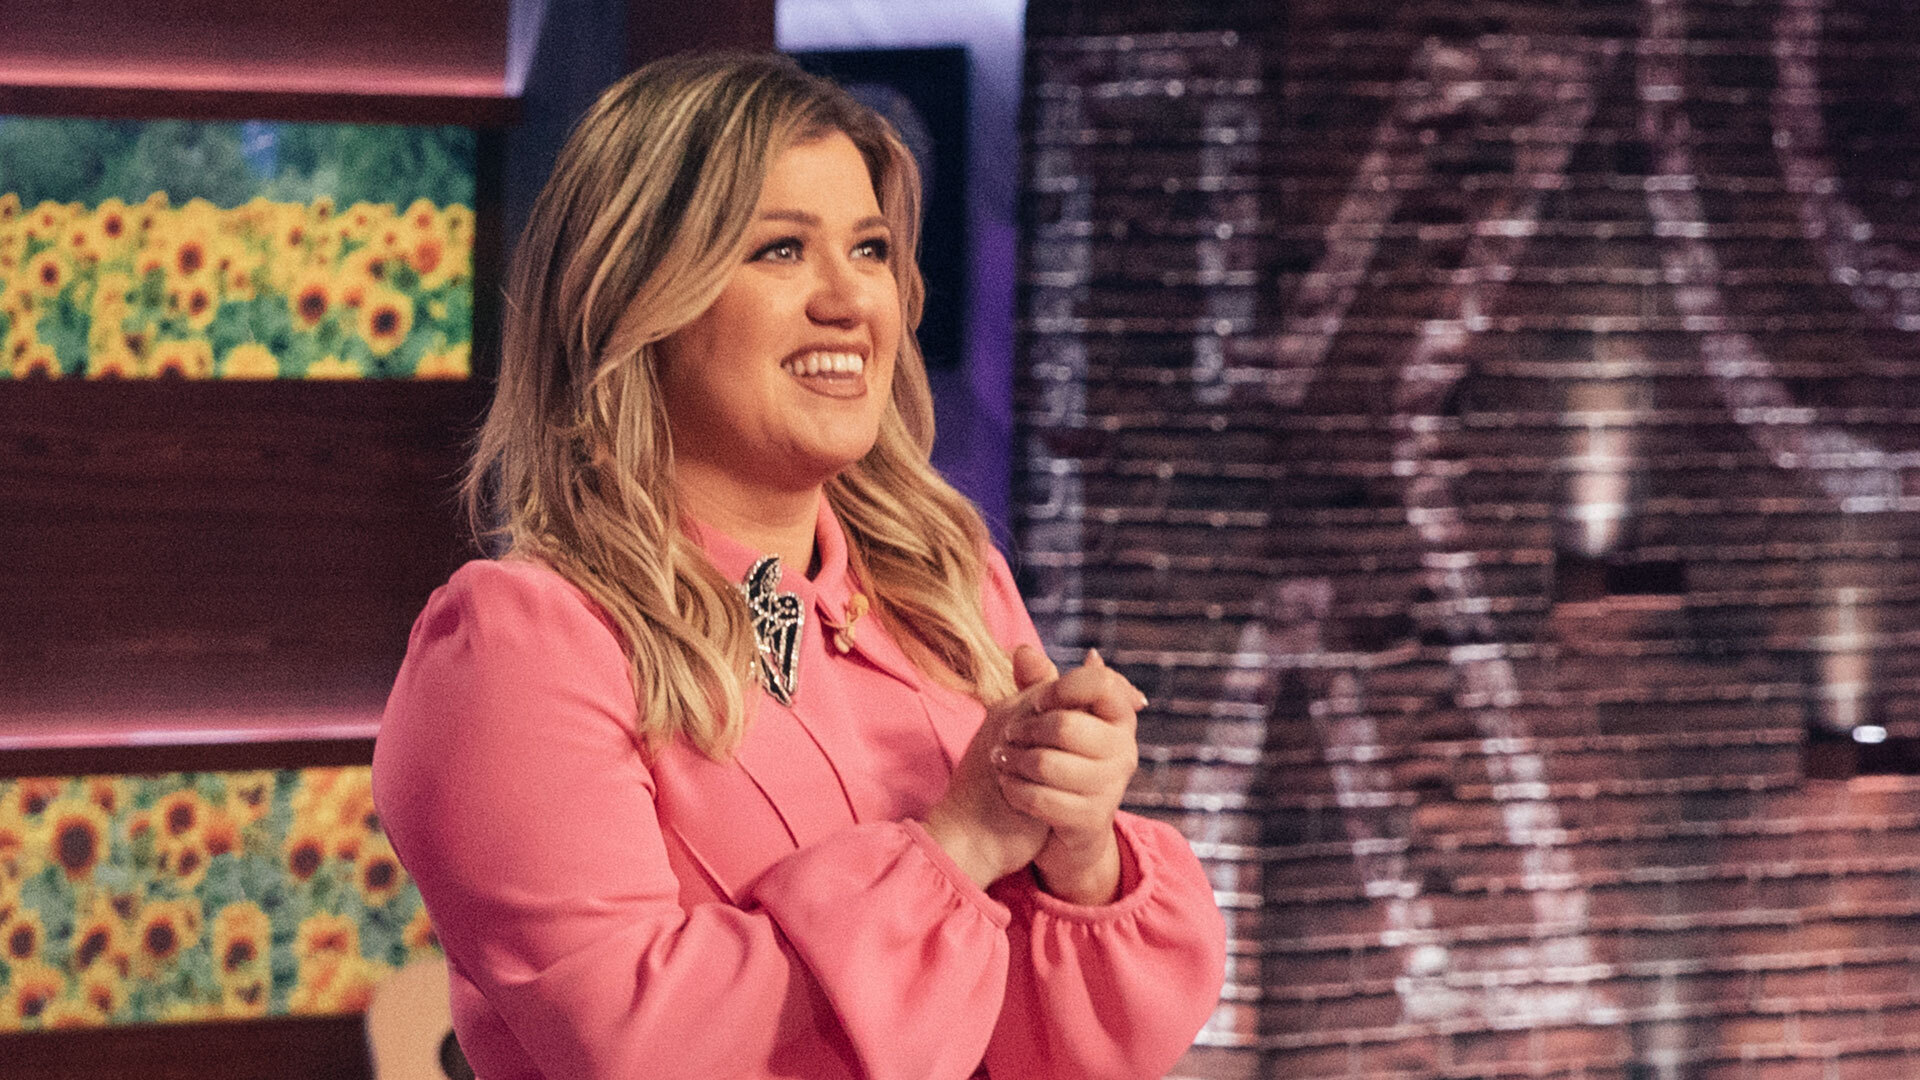 Kelly Clarkson claims '2020 has brought changes that she never saw coming